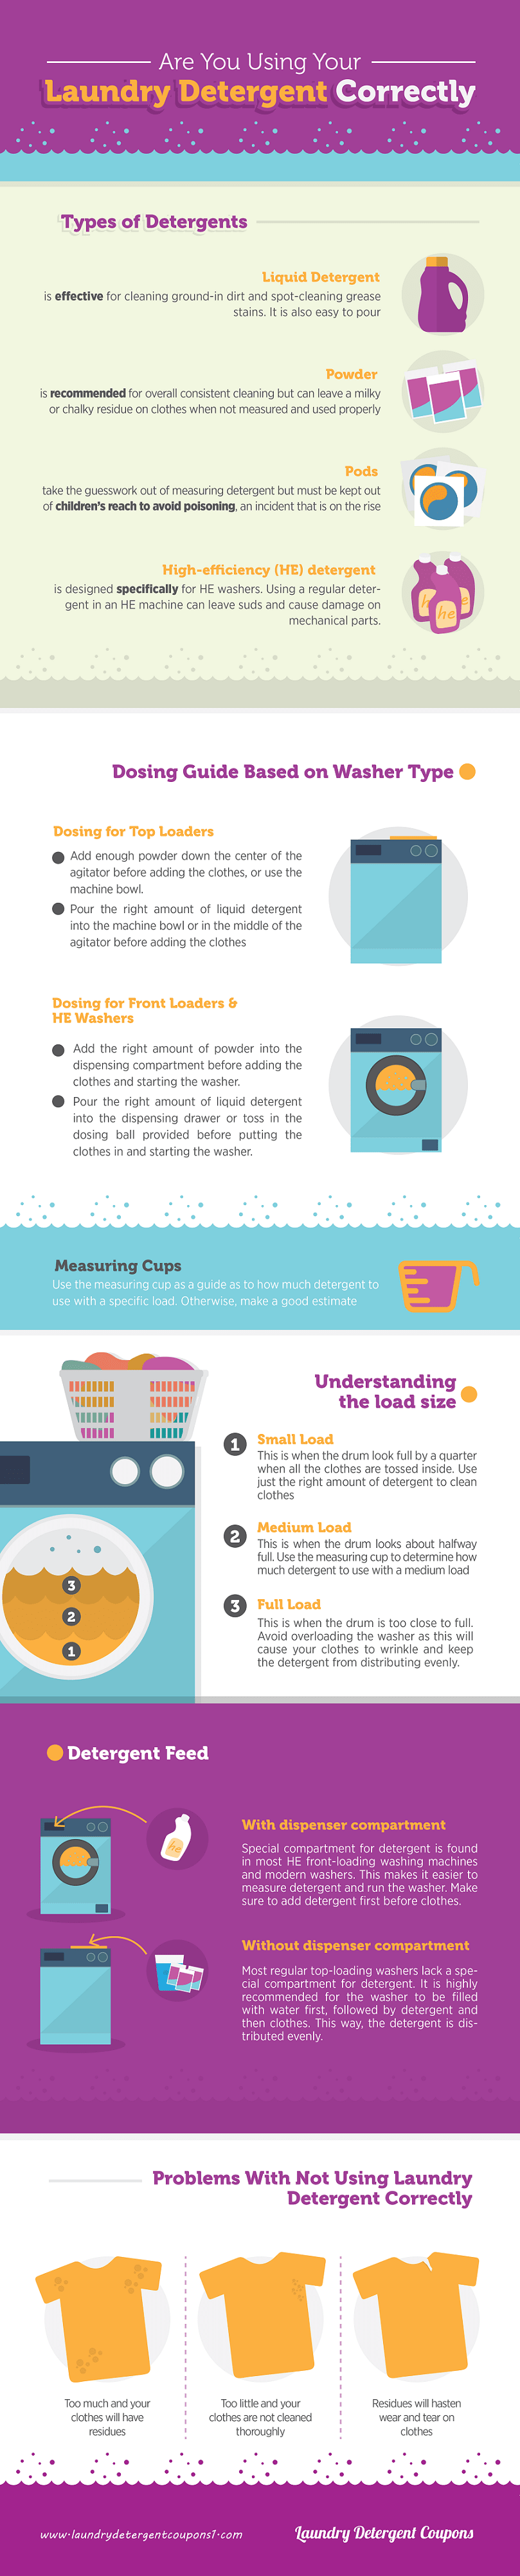 Are You Using Your Laundry Detergent Correctly